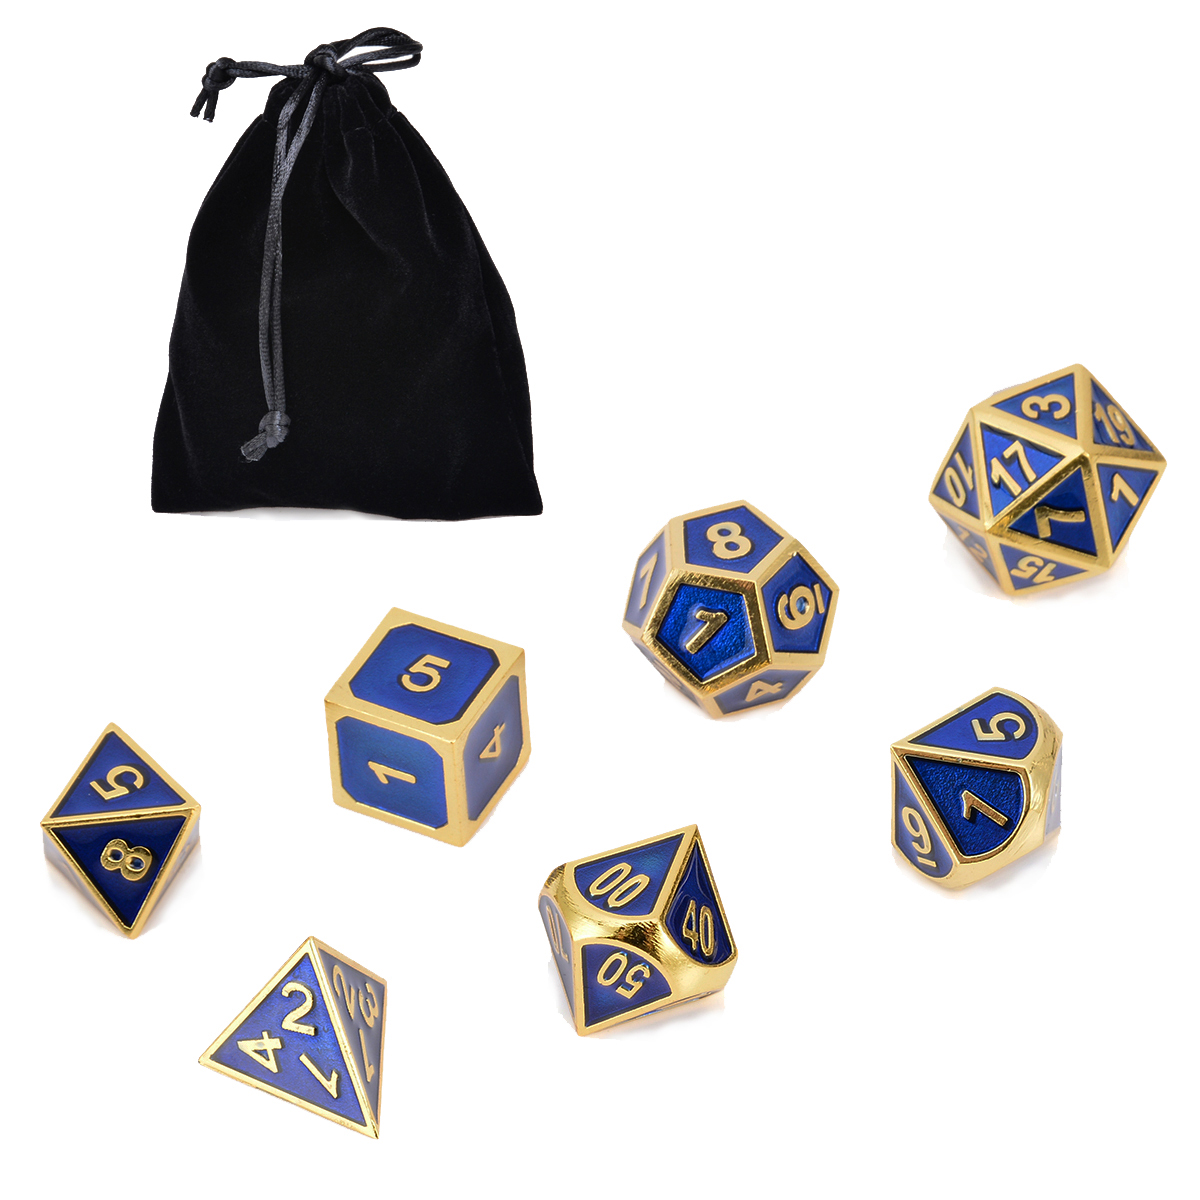 7Pc Metal Polyhedral Dice Antique Gold & Blue With Bag Dungeons & Dragons RPG MTG Role Playing Board Interesting Gathering Game